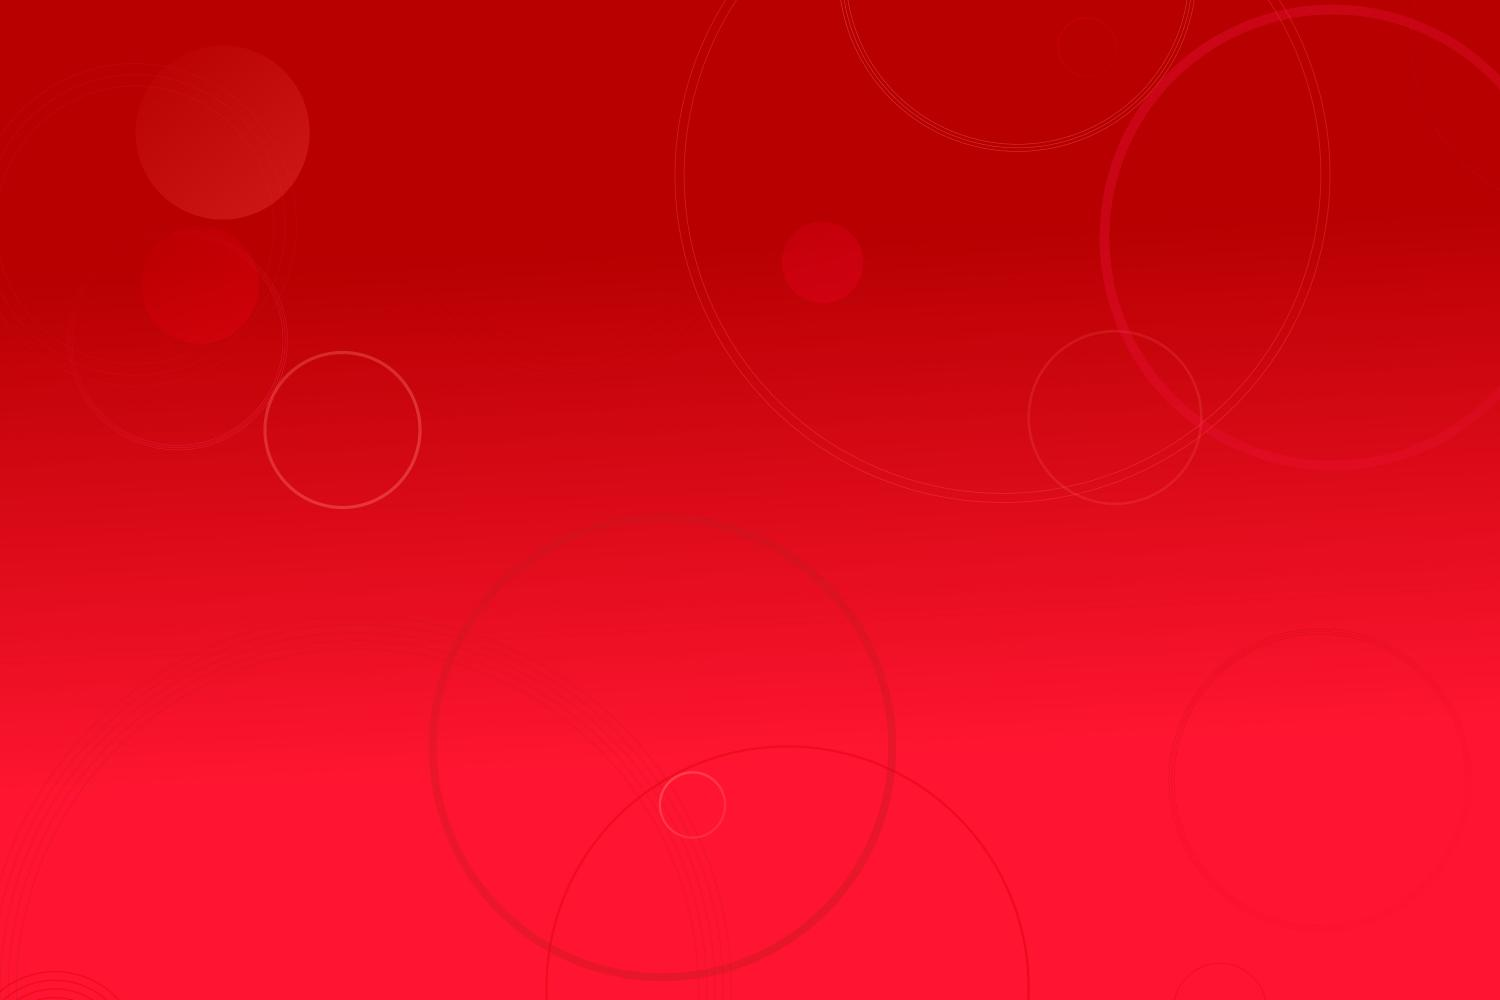 Download Free Red Webpage Background With Circles Graphic By Davidzydd for Cricut Explore, Silhouette and other cutting machines.